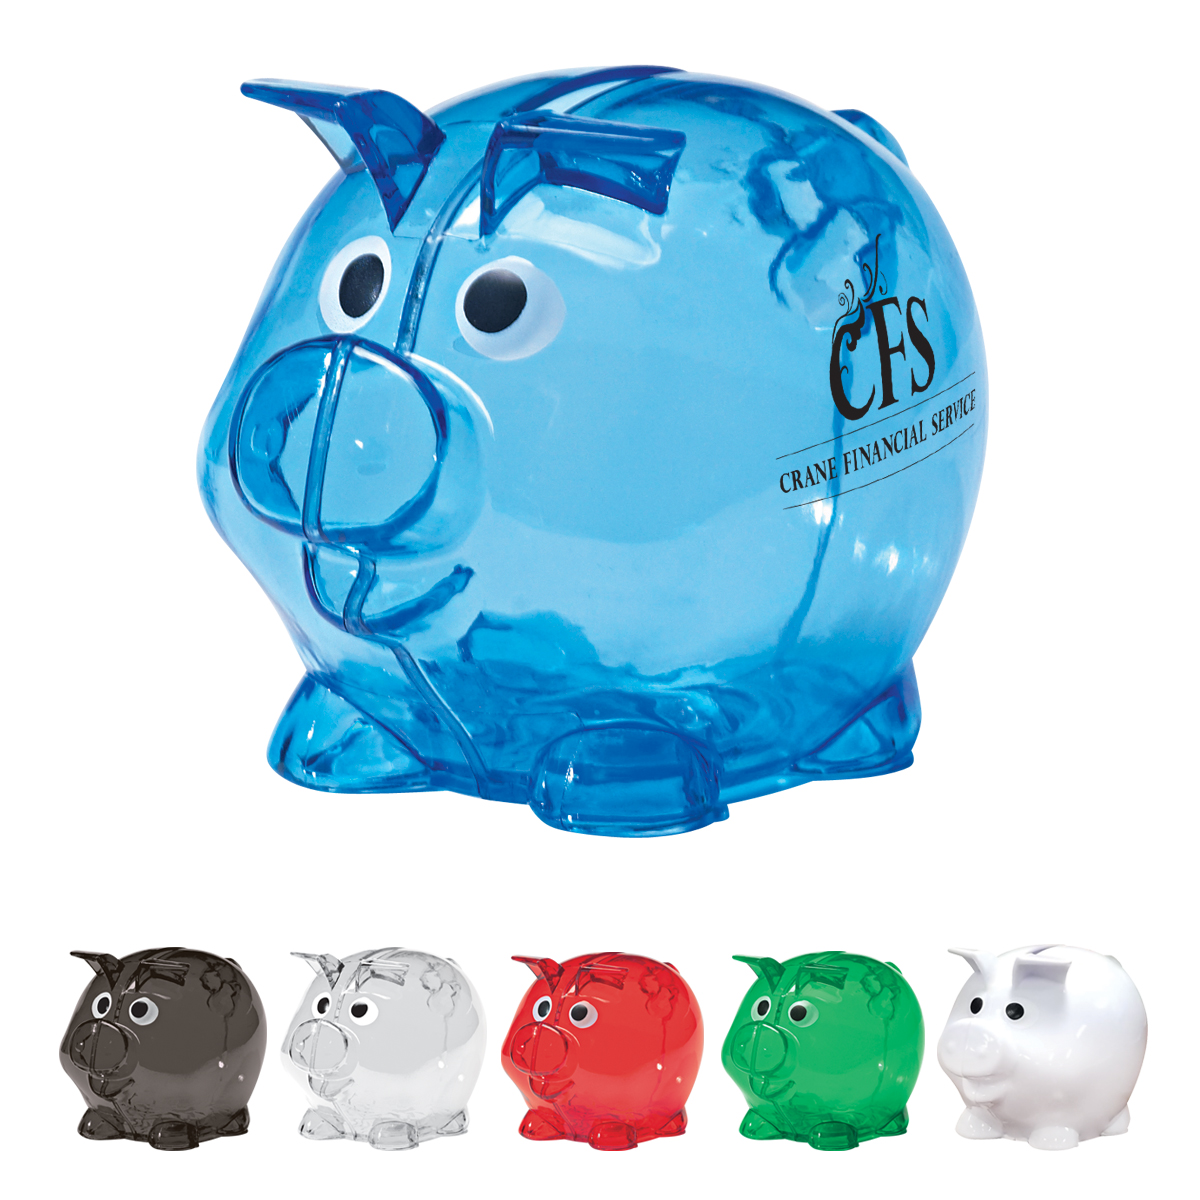 Product image 5062 for Mini piggy banks